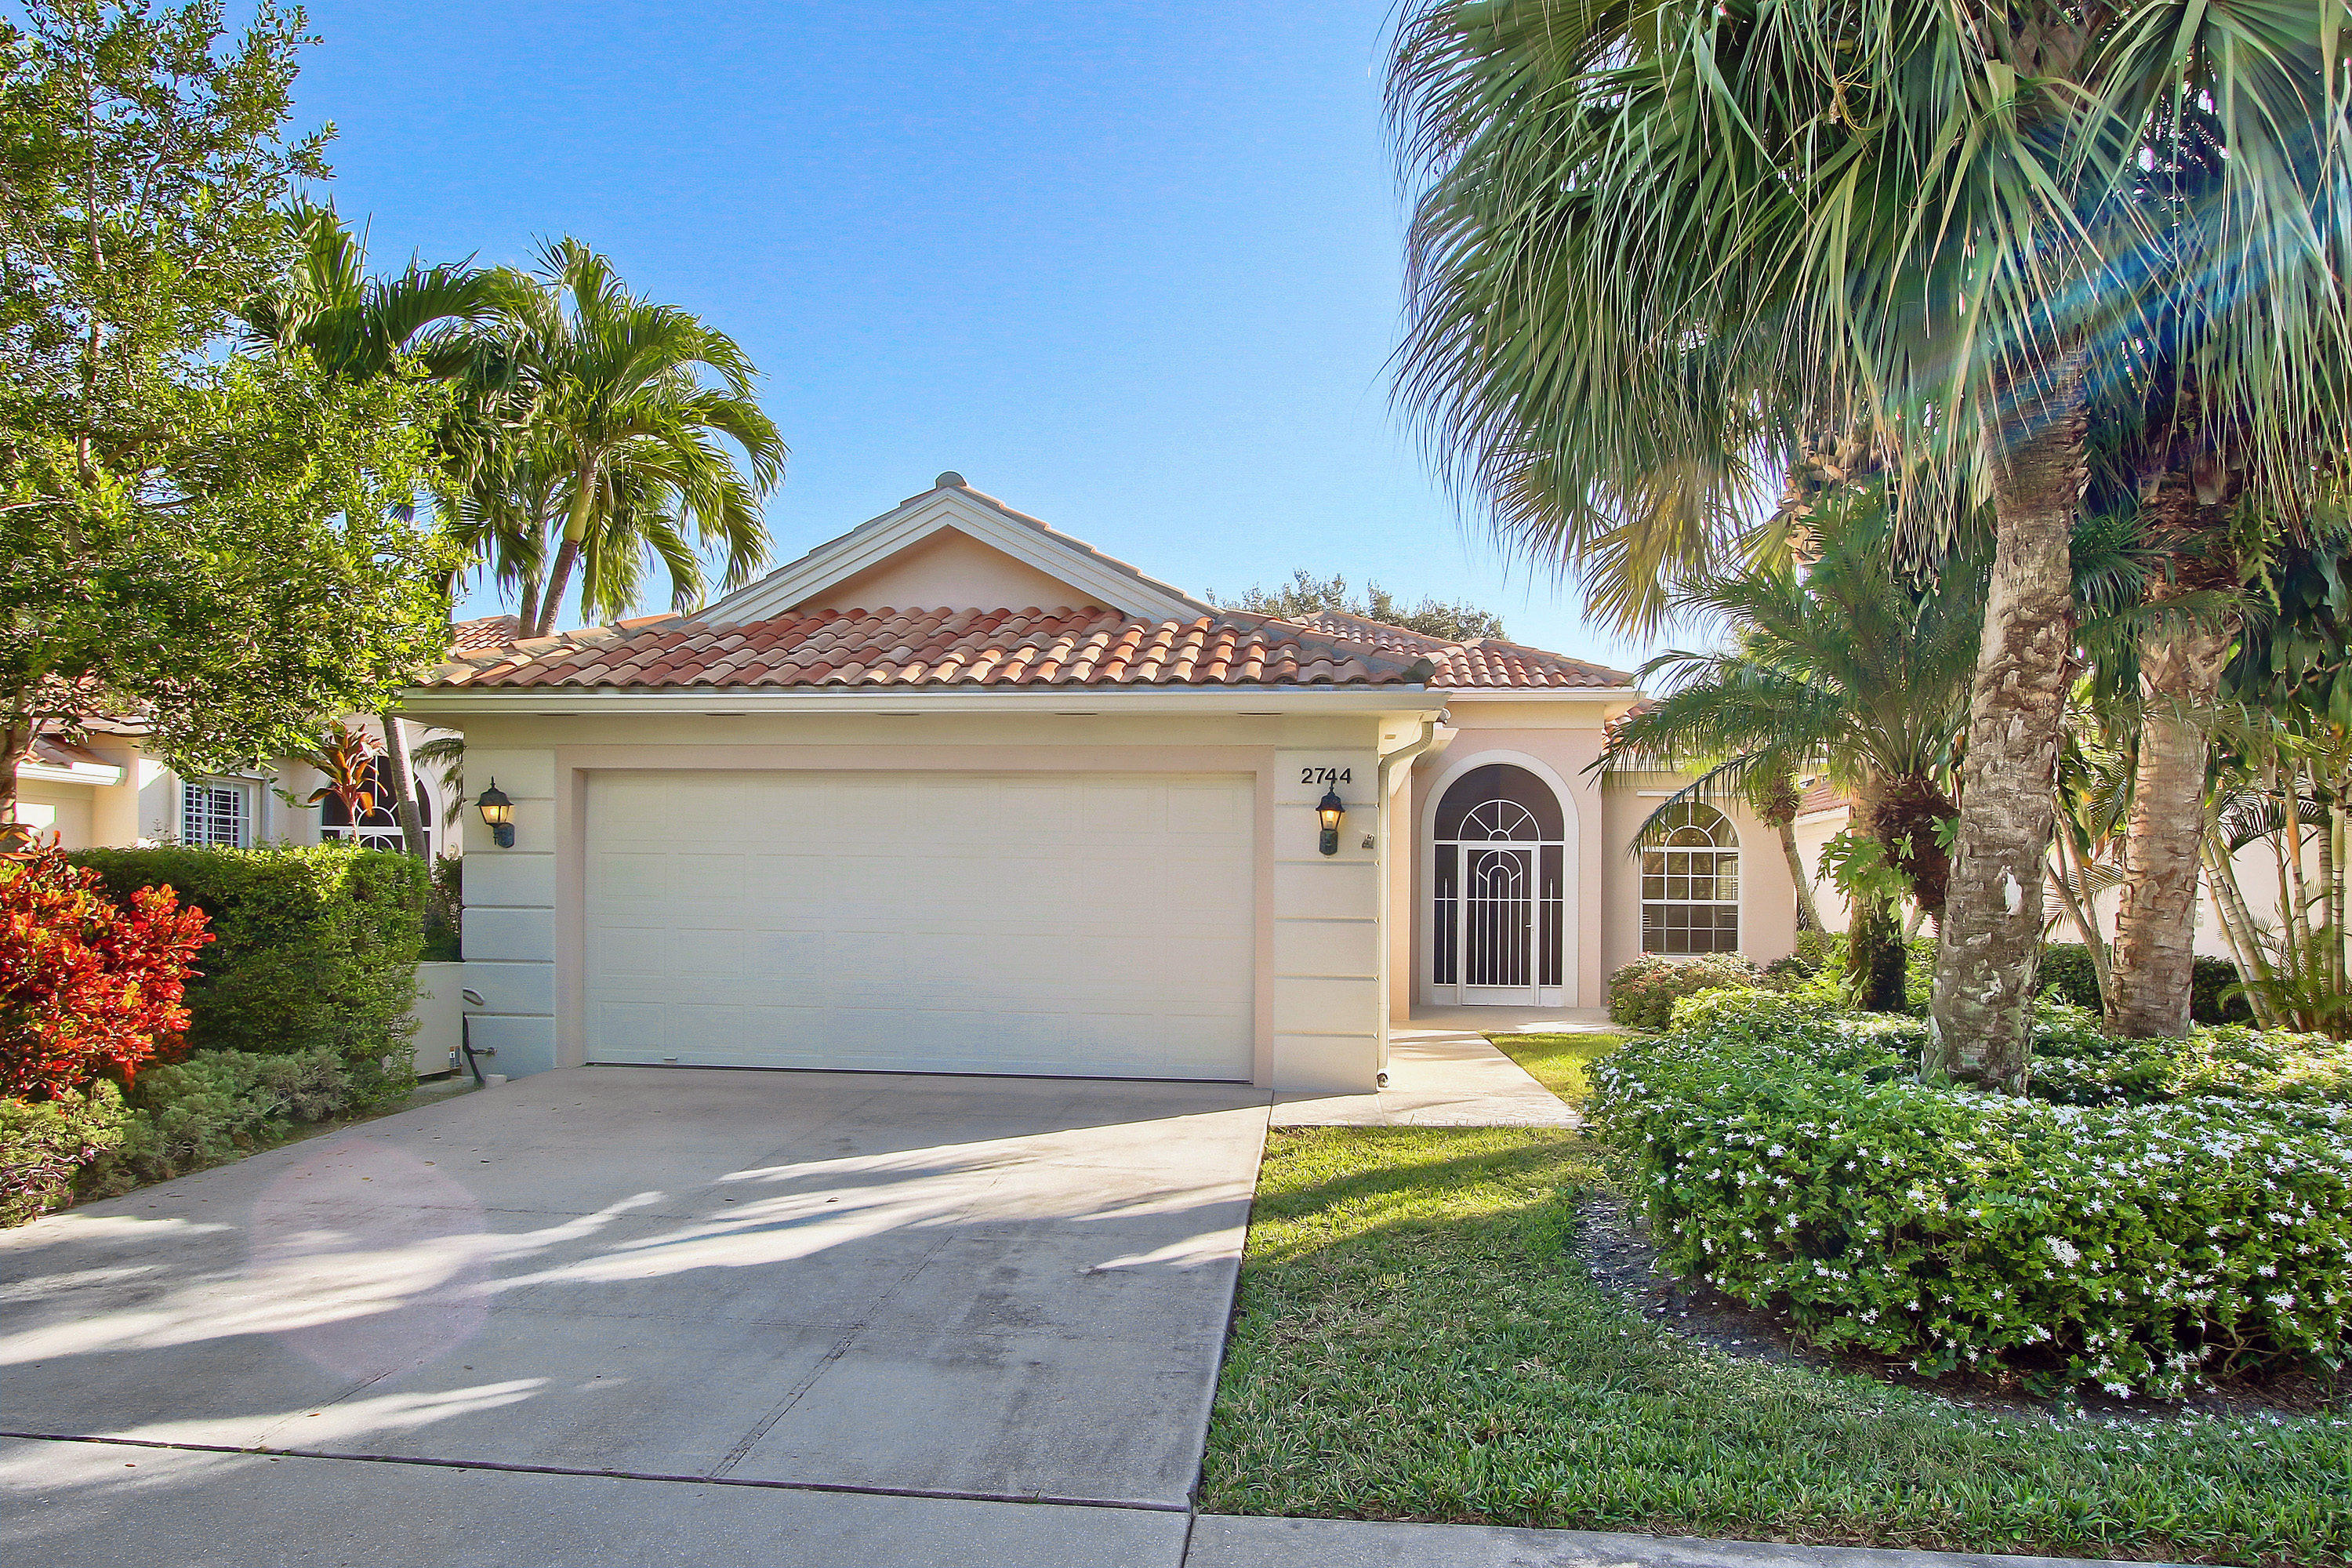 2744 Muskegon Way West Palm Beach, FL 33411